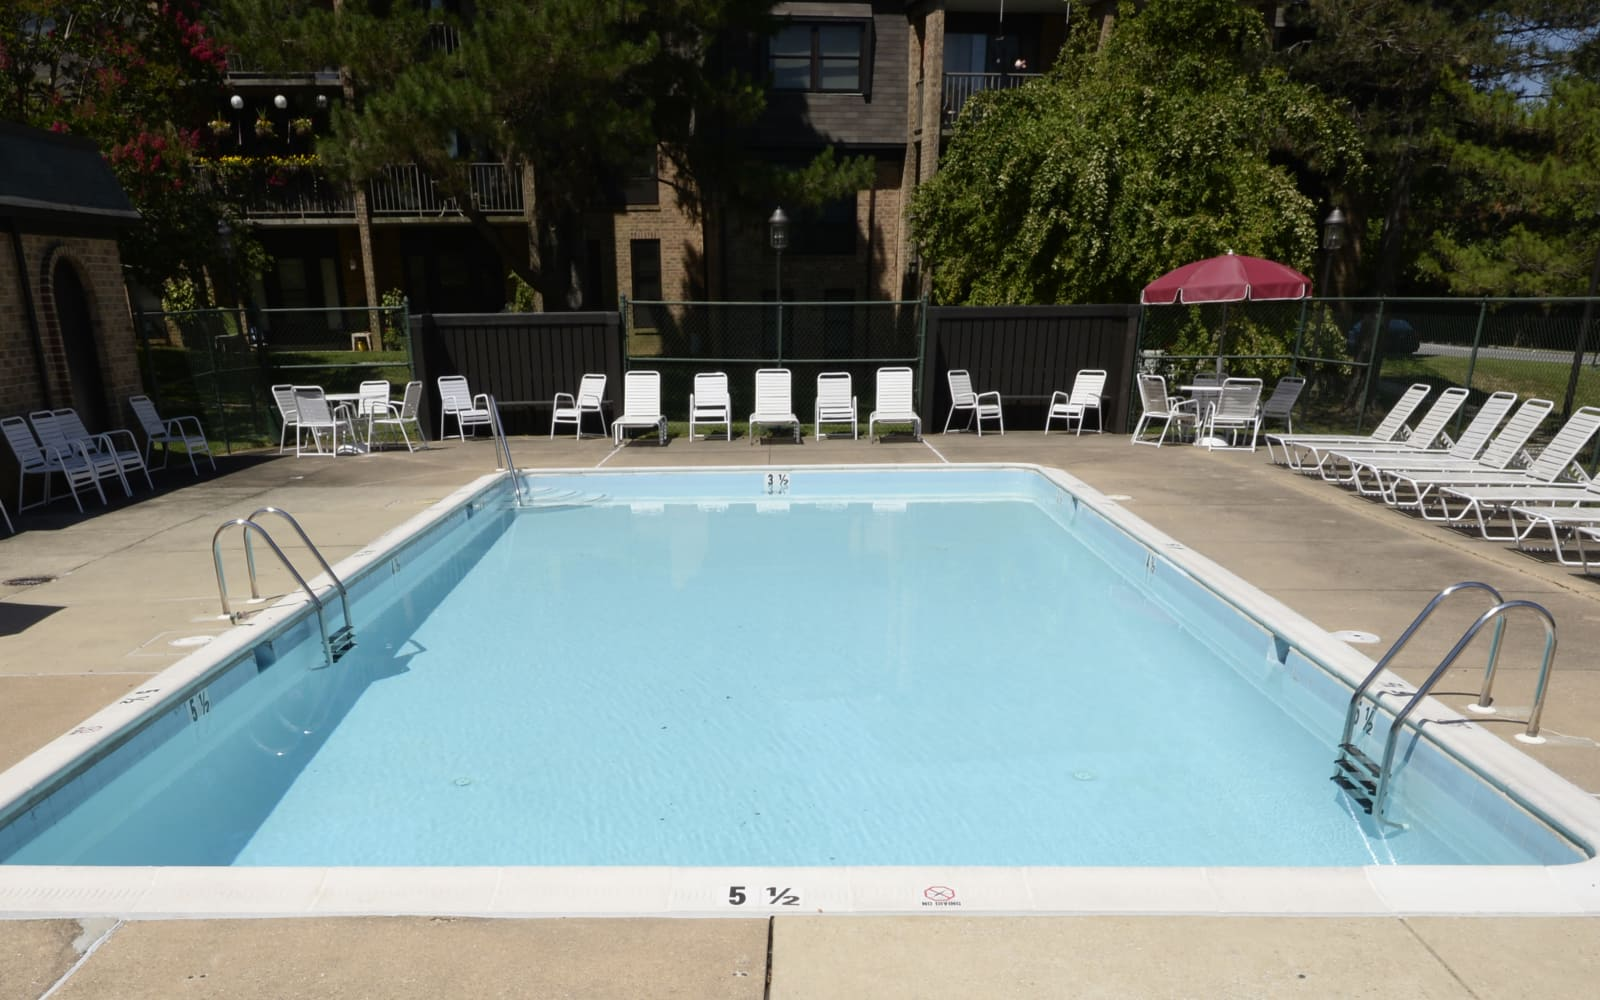 Charlesgate Apartments offers a swimming pool in Towson, Maryland